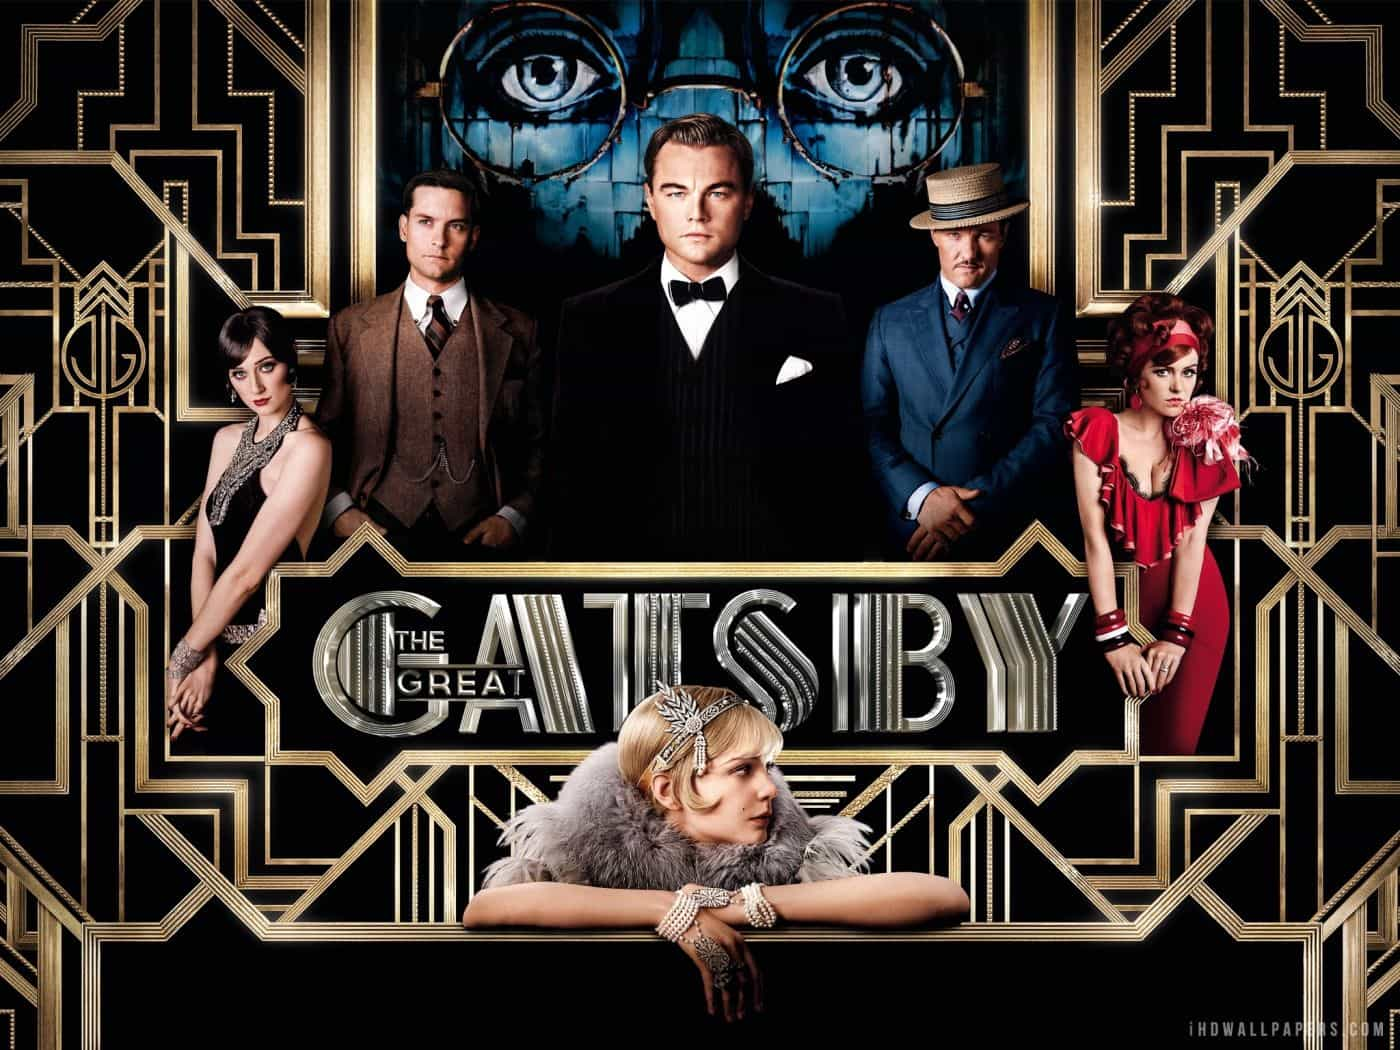 The Great Gatsby: characters and characterization photo